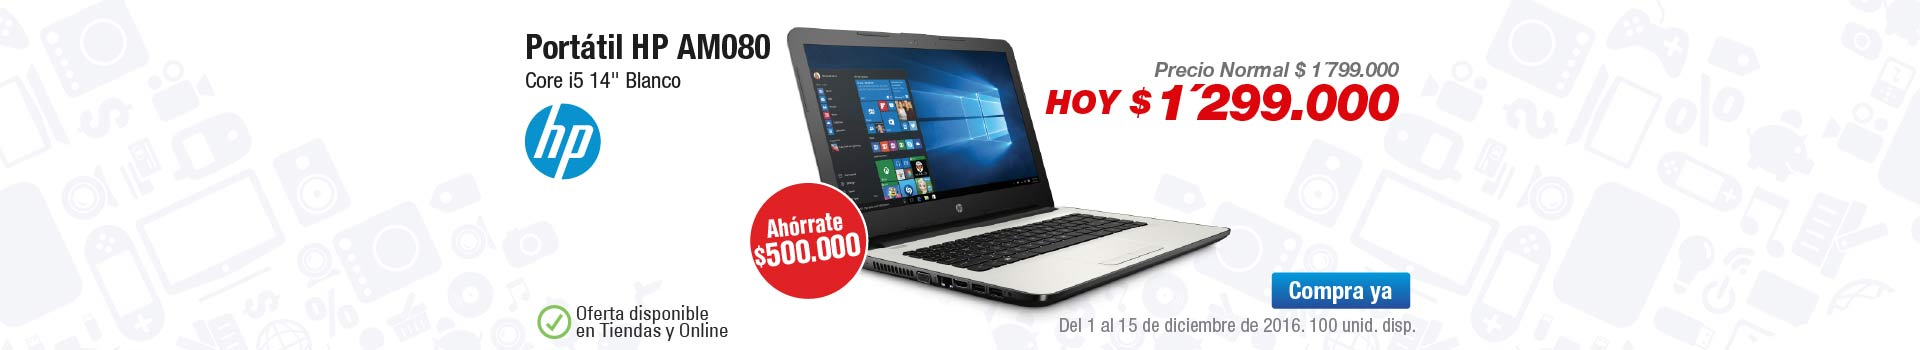 Categoria PC y Tablets - diciembre 2 - Portátil HP AM080 Core i5 14